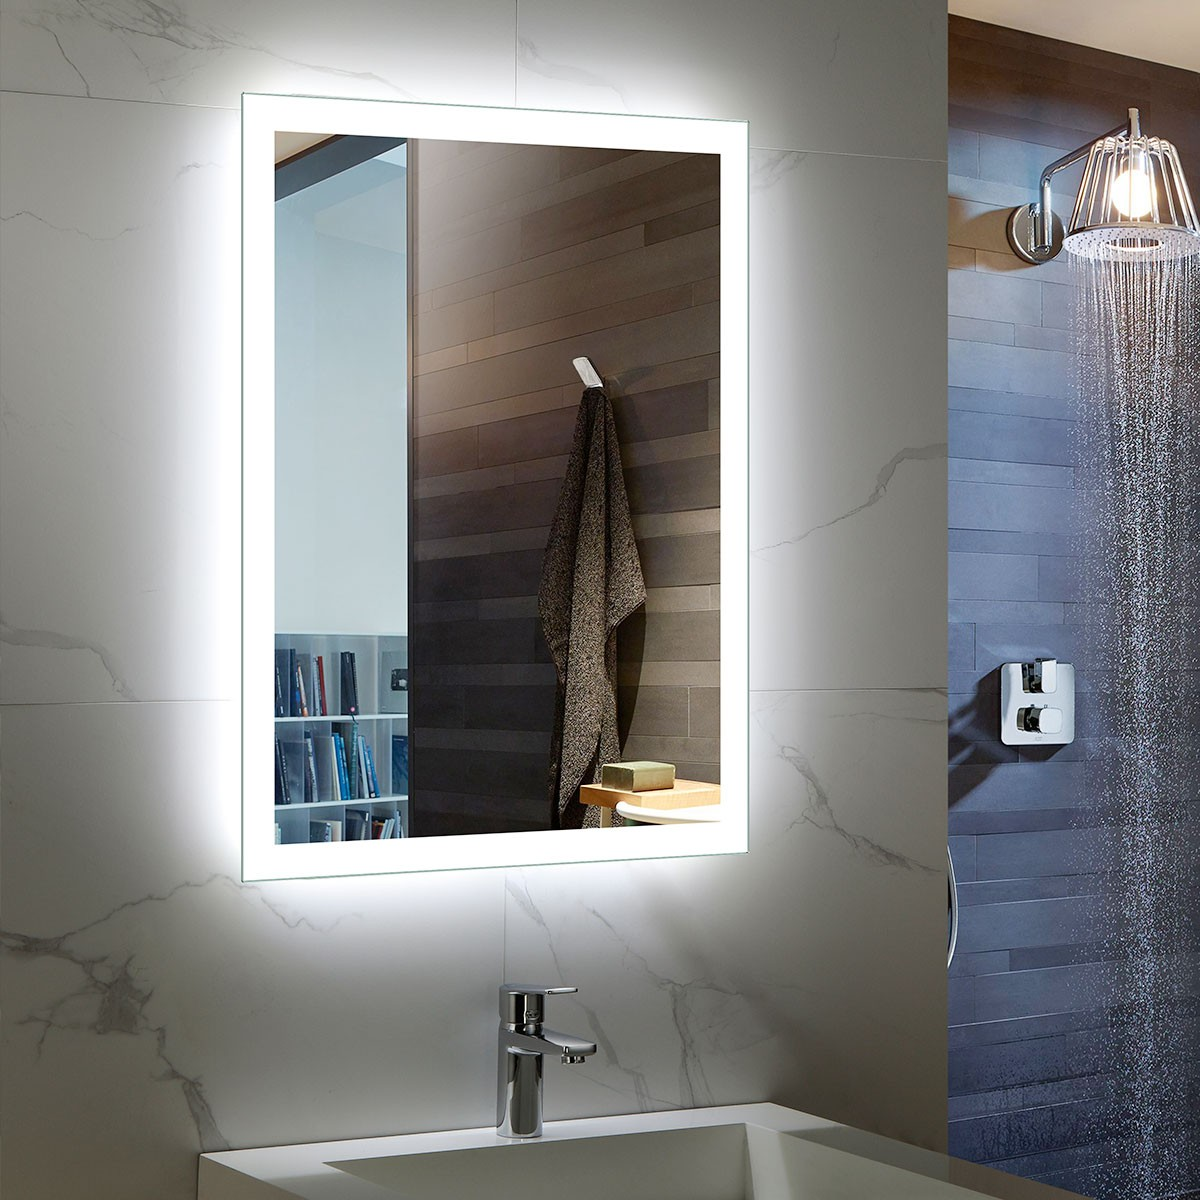 24 x 32 In LED Bathroom Mirror with Infrared Sensor (DK-OD-N031-G)